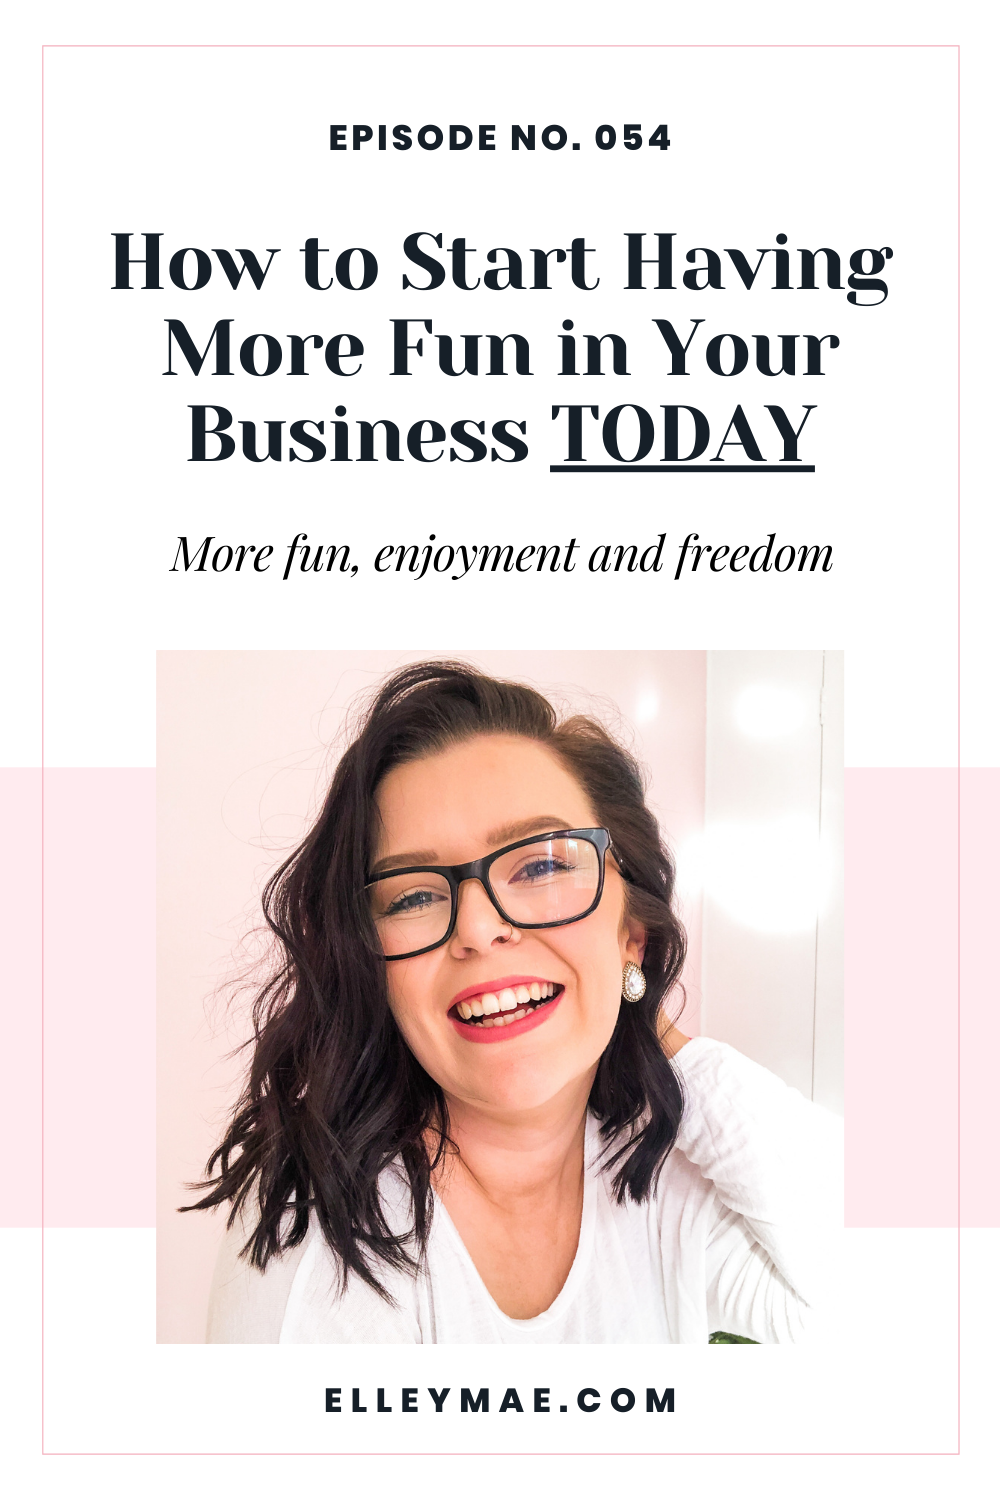 054. How to Start Having More Fun in Your Business TODAY